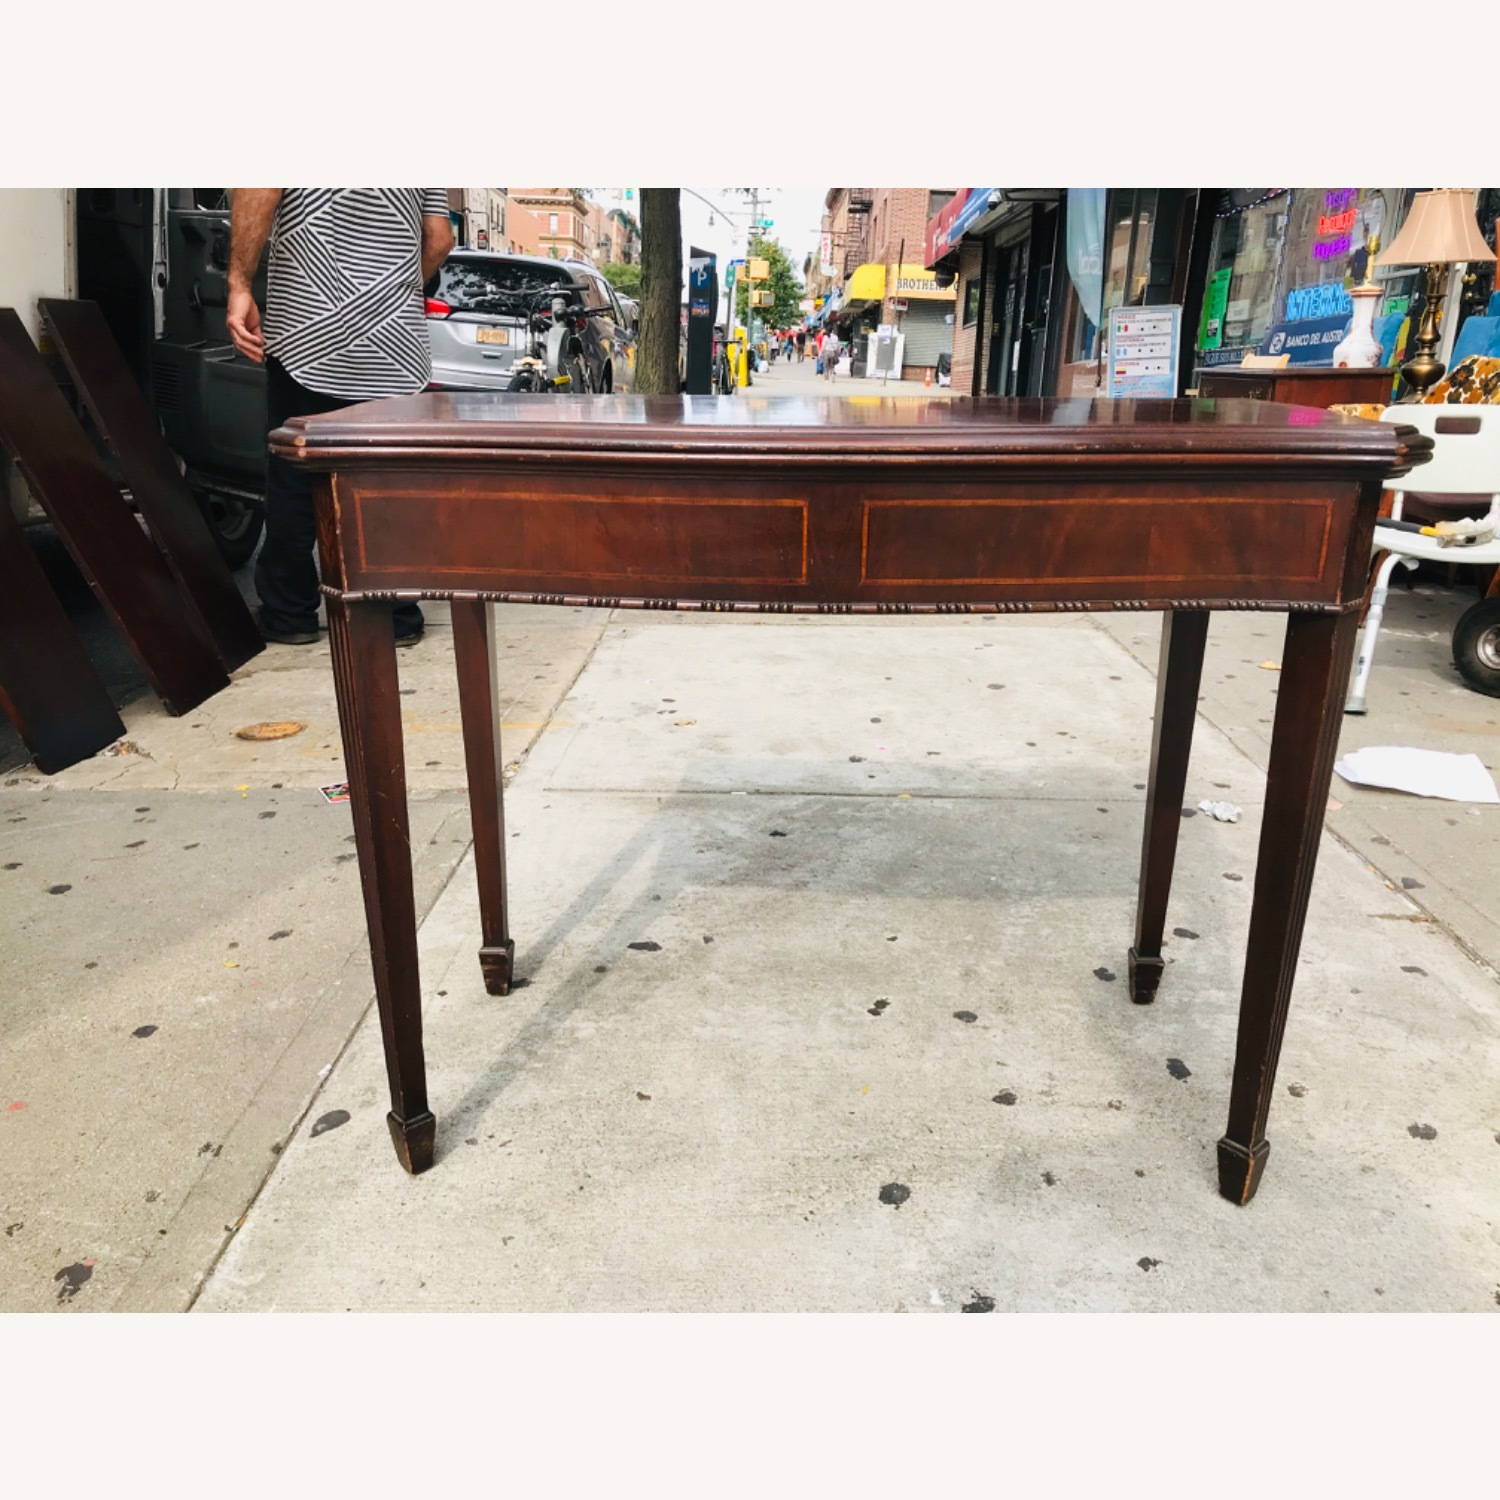 Antique 1920s Mahogany Table w/3 Leaves  - image-32